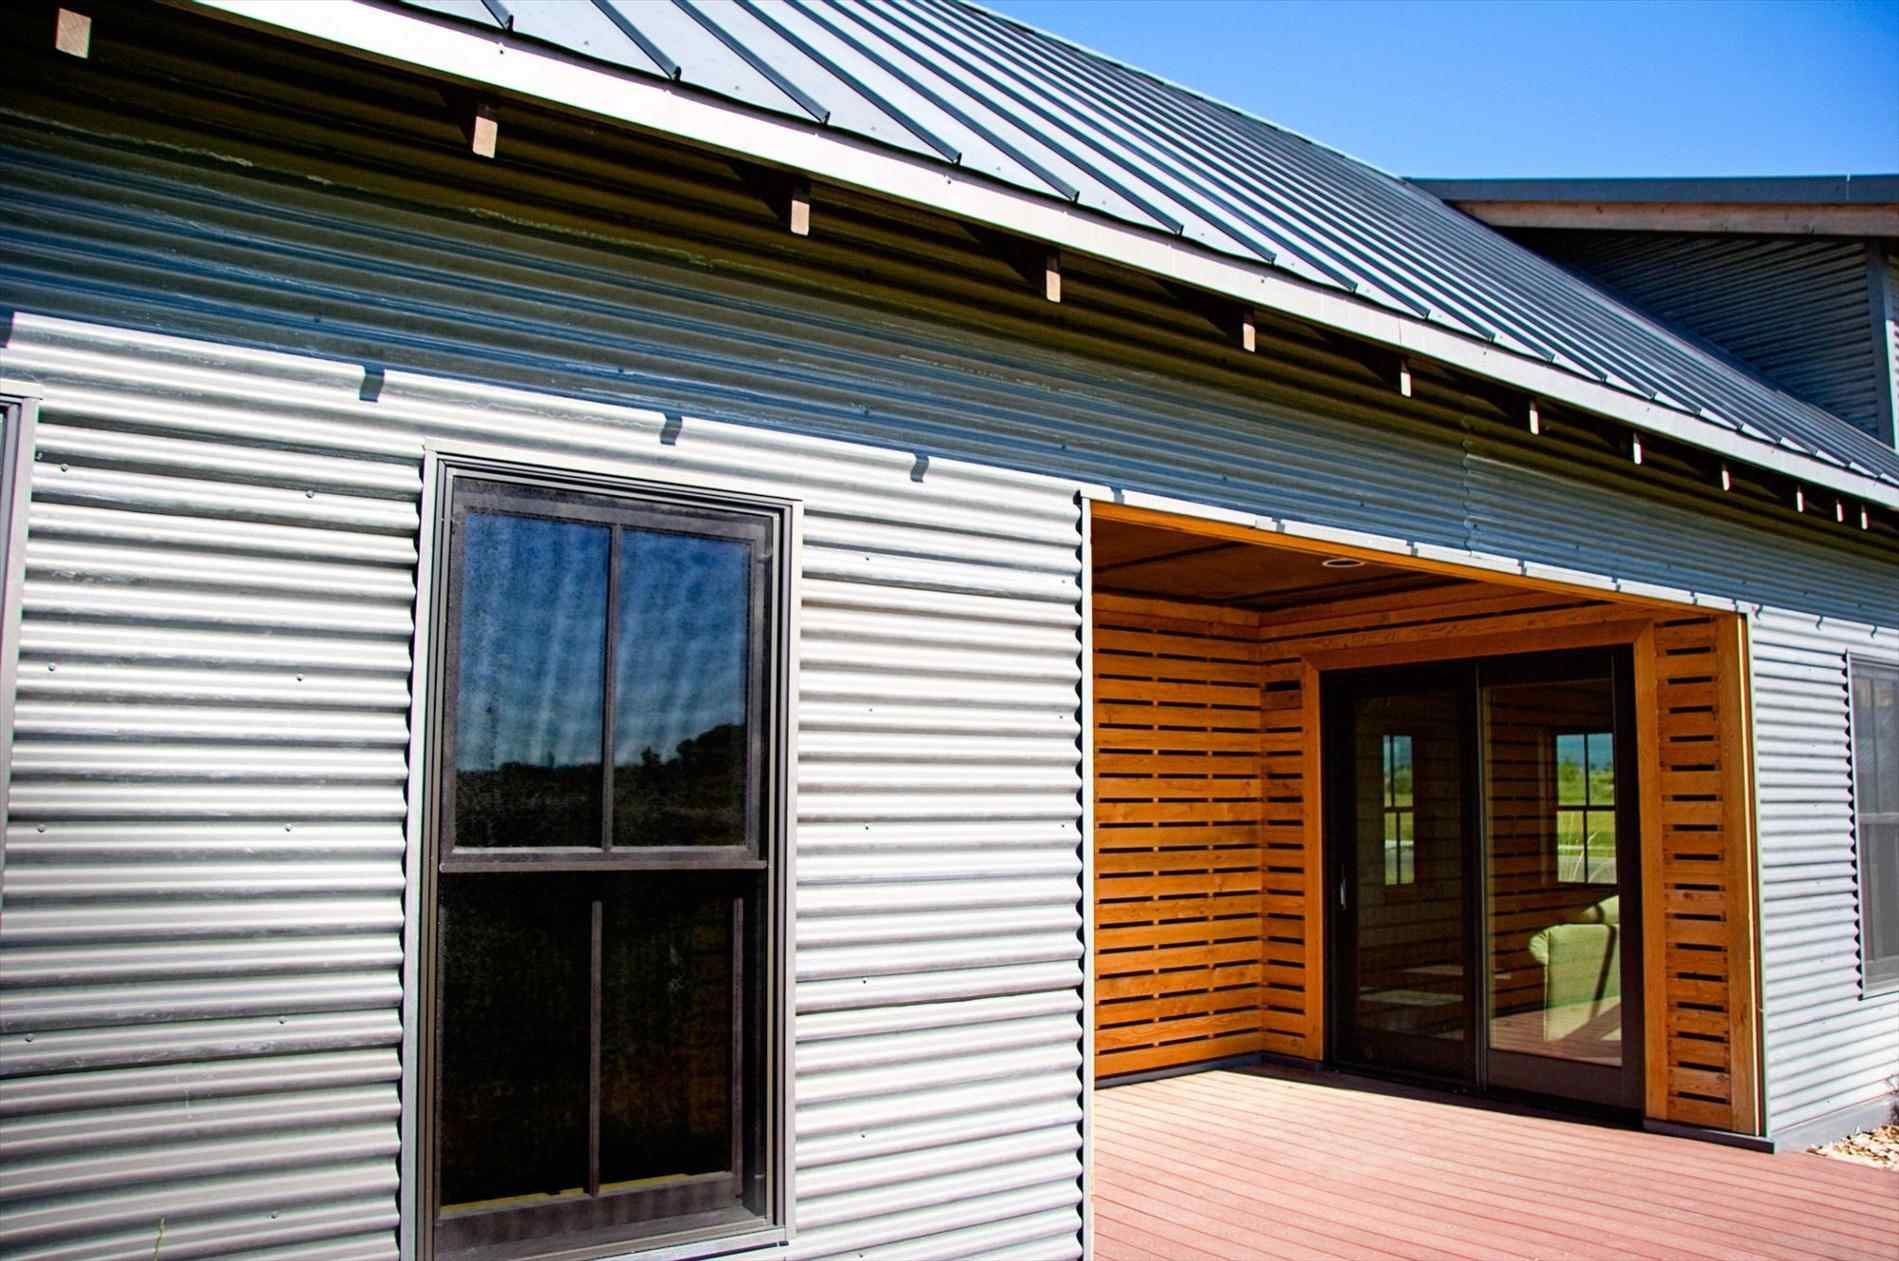 Our Steel Roof Color Copper Penny Installed By Parraghi S Roofing And Sheet Metal Croswell Michigan Metal Roof Colors Metal Roof Copper Metal Roof